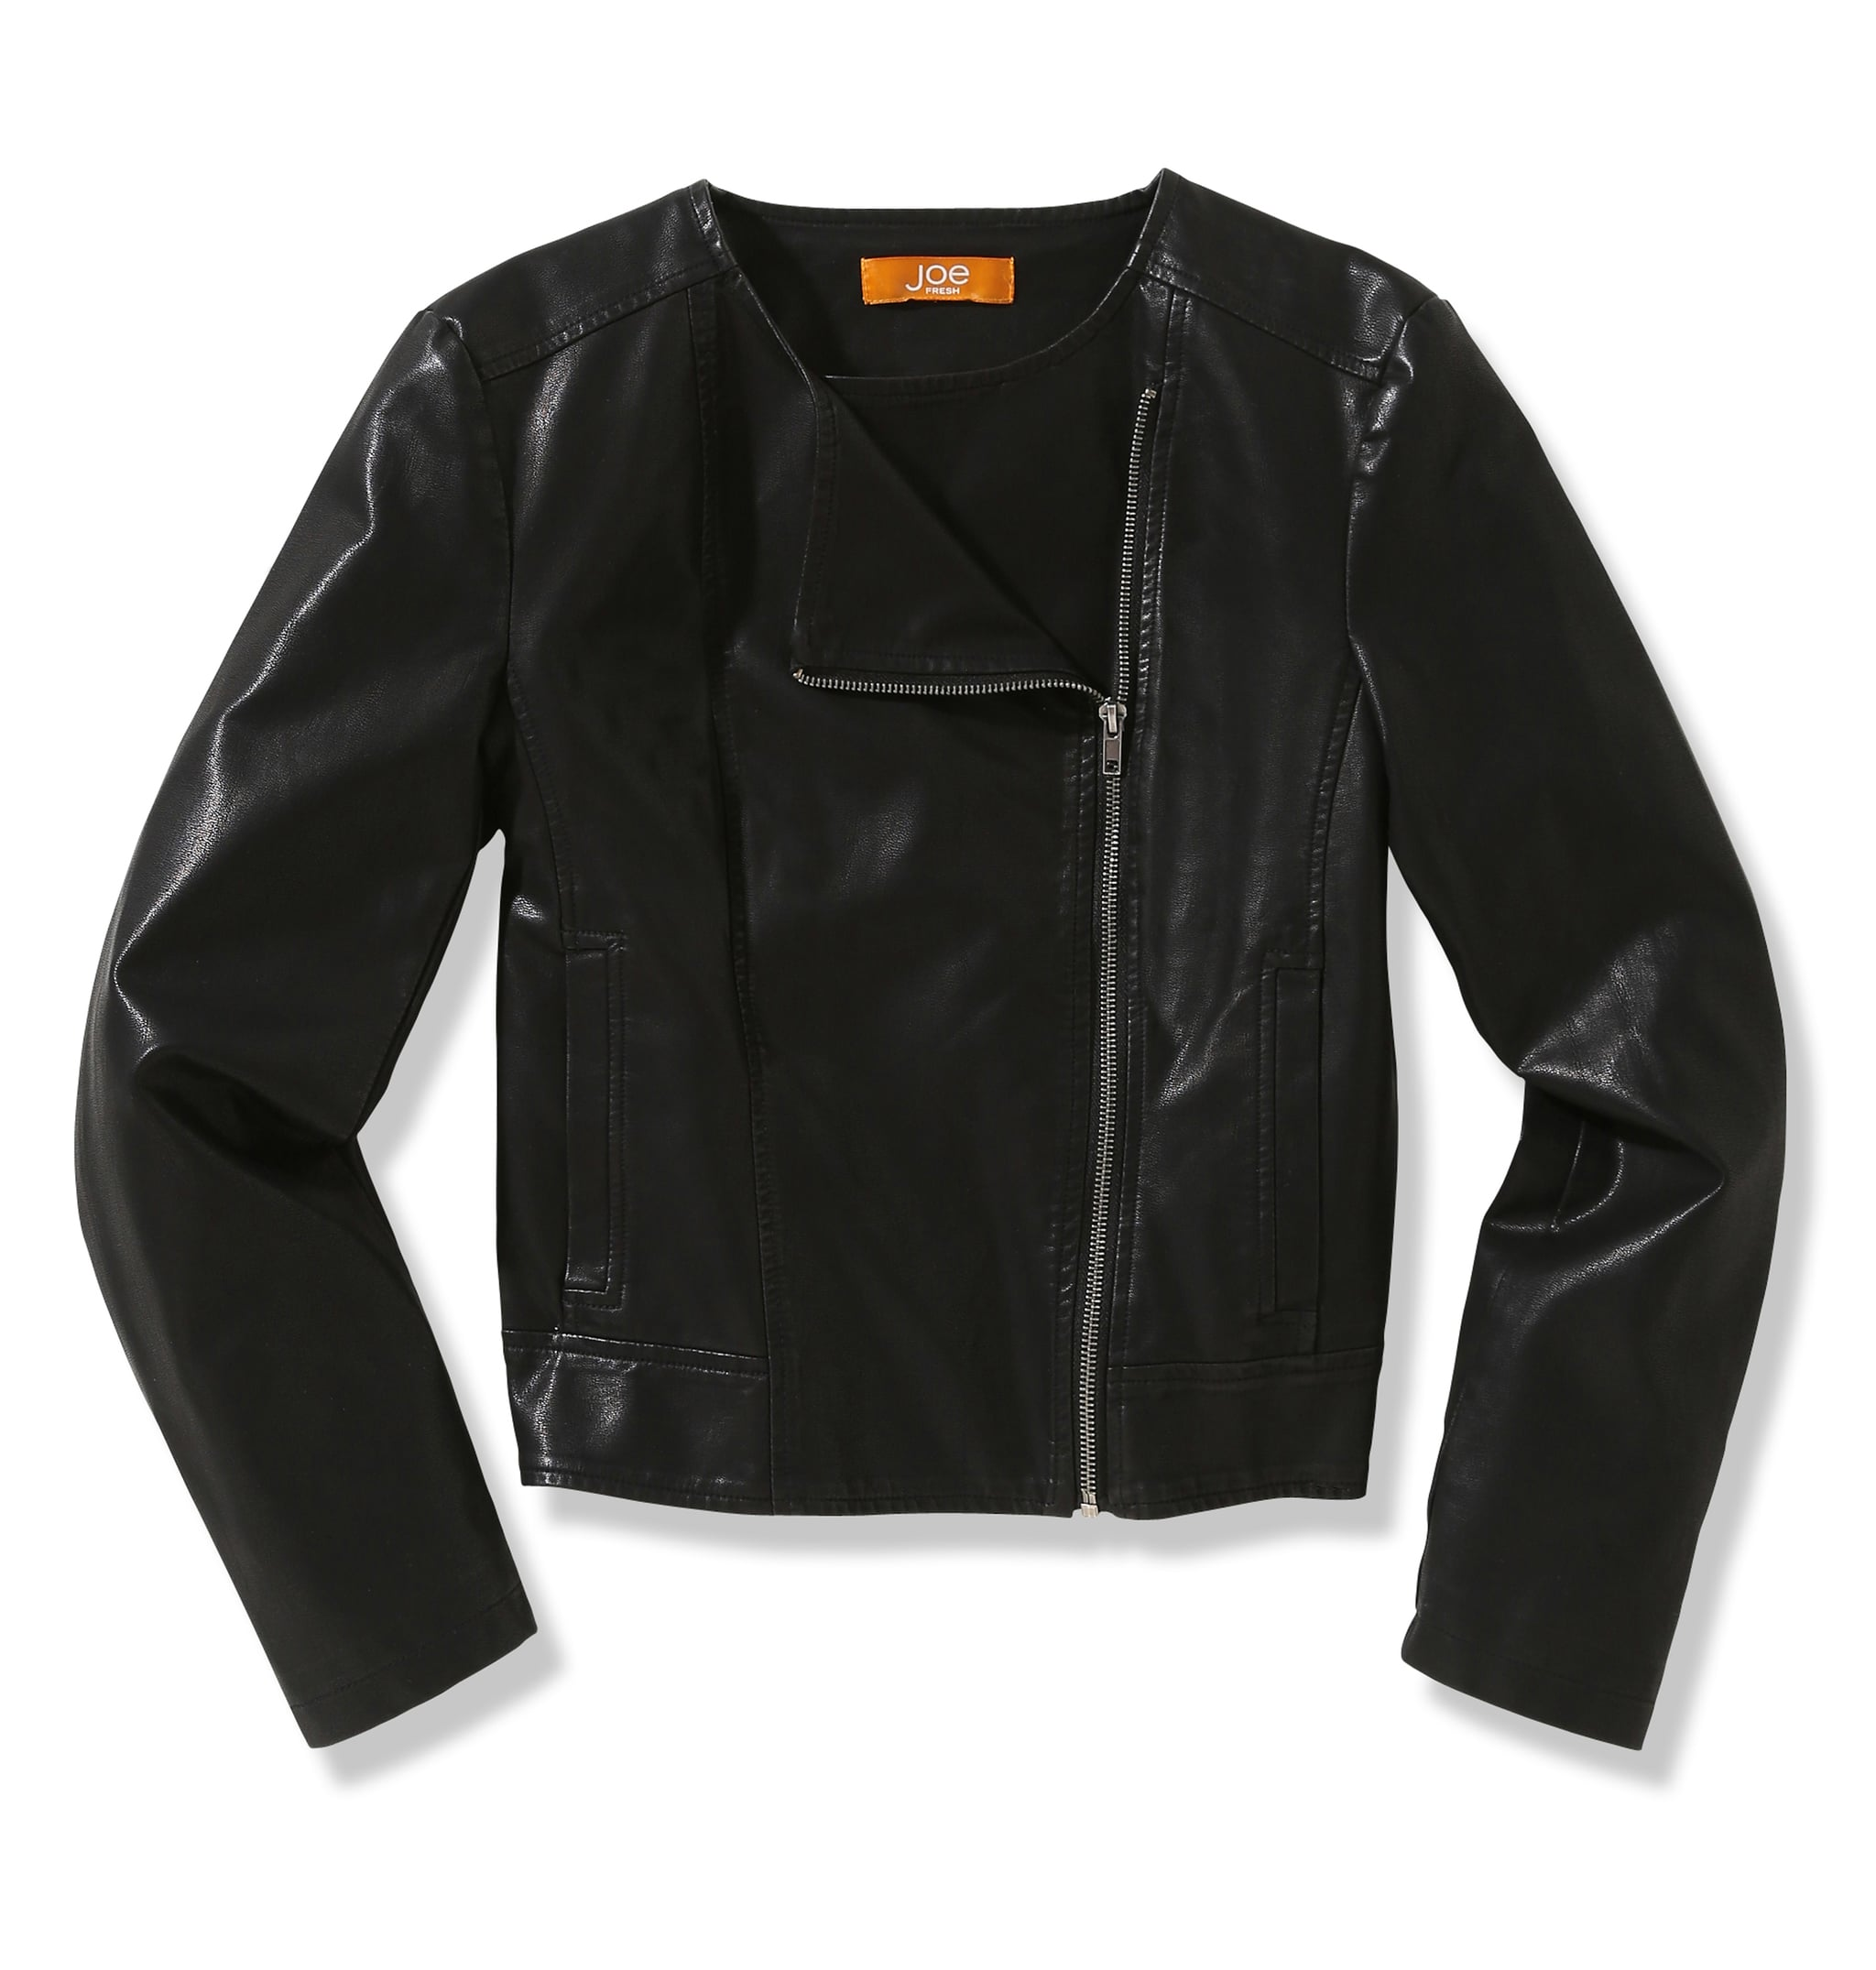 Clean lines and a classic cut? This simple Joe Fresh jacket ($49) will work on anyone.